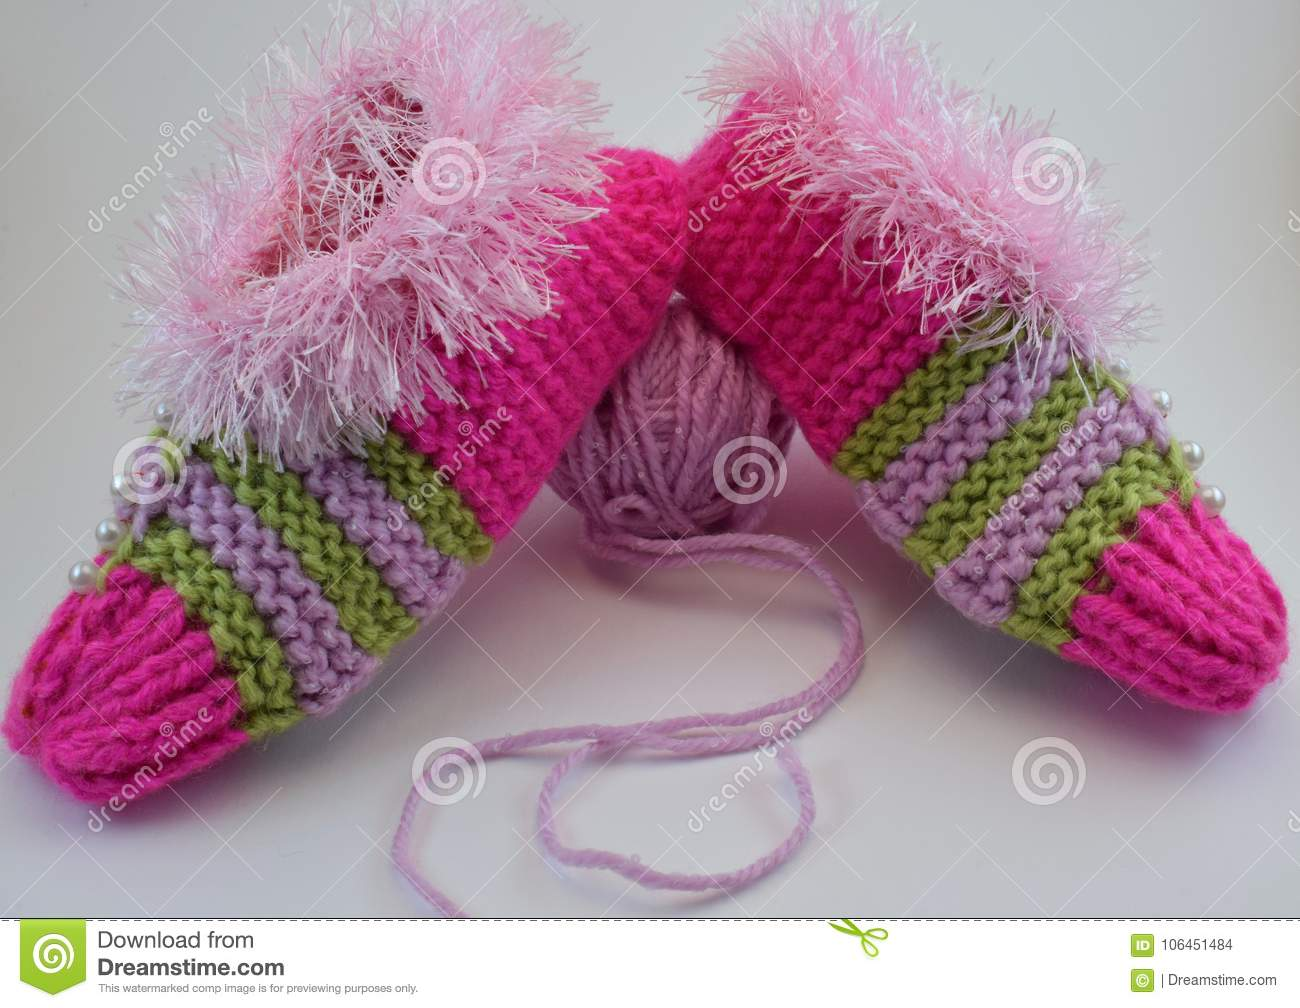 Knitted warm Slippers for Christmas